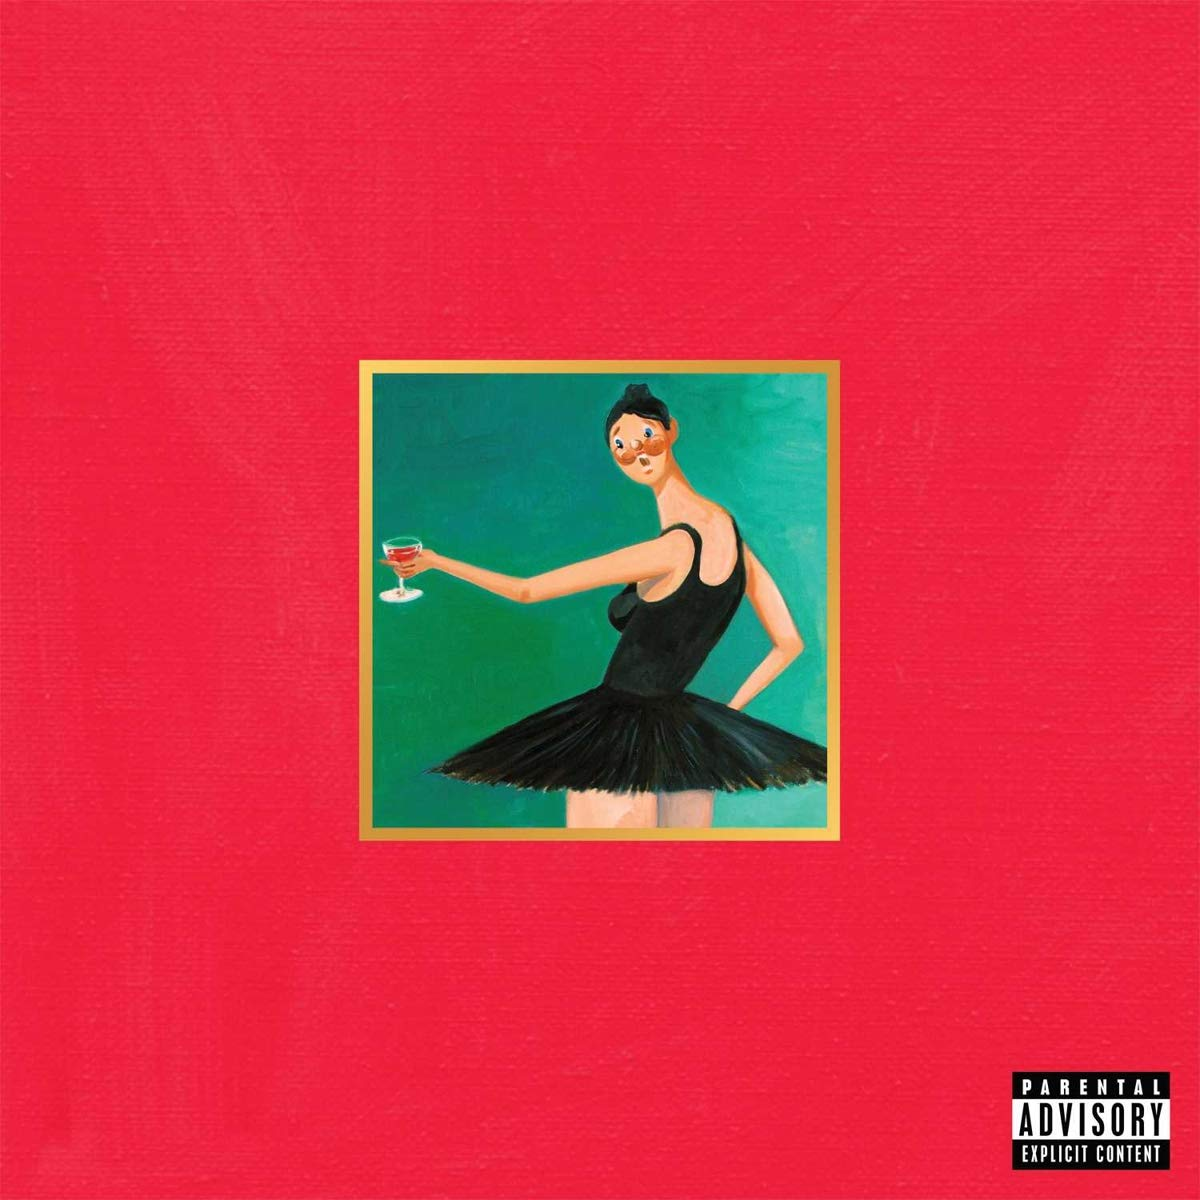 10.15 Kanye West - My Beautiful Dark Twisted Fantasy